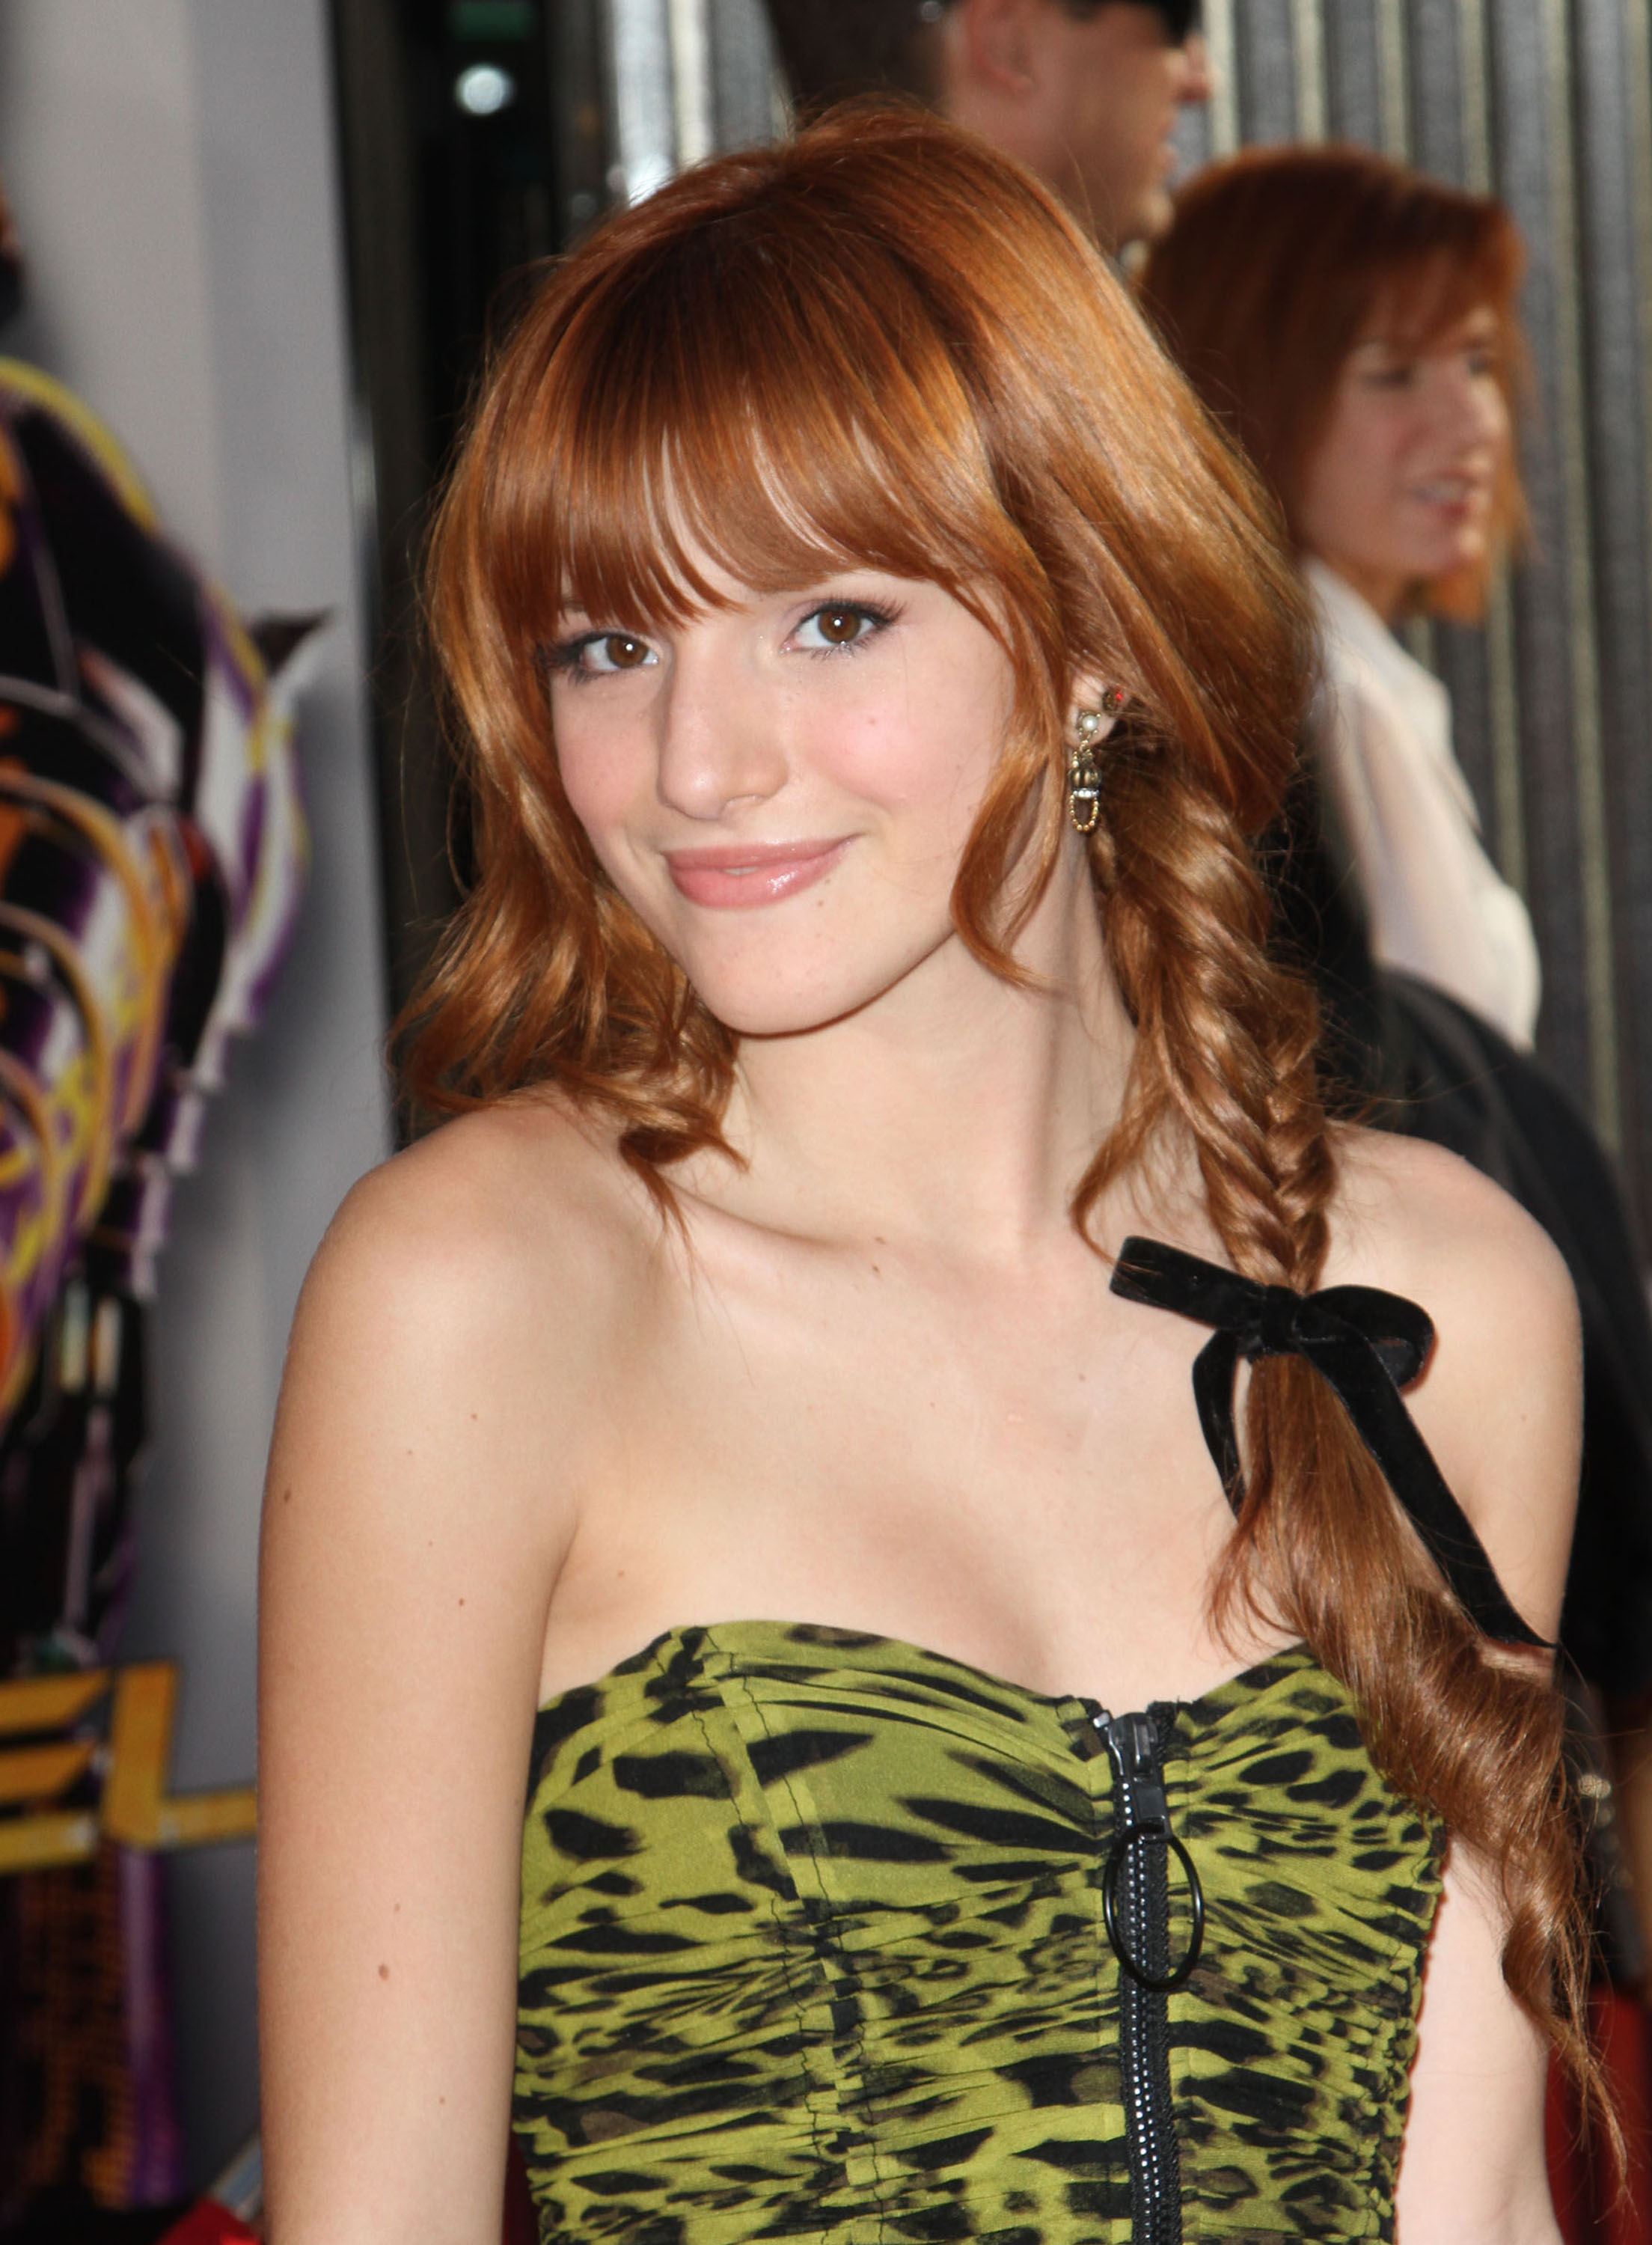 Gallery: Bella Thorne Pictures Gallery (7)